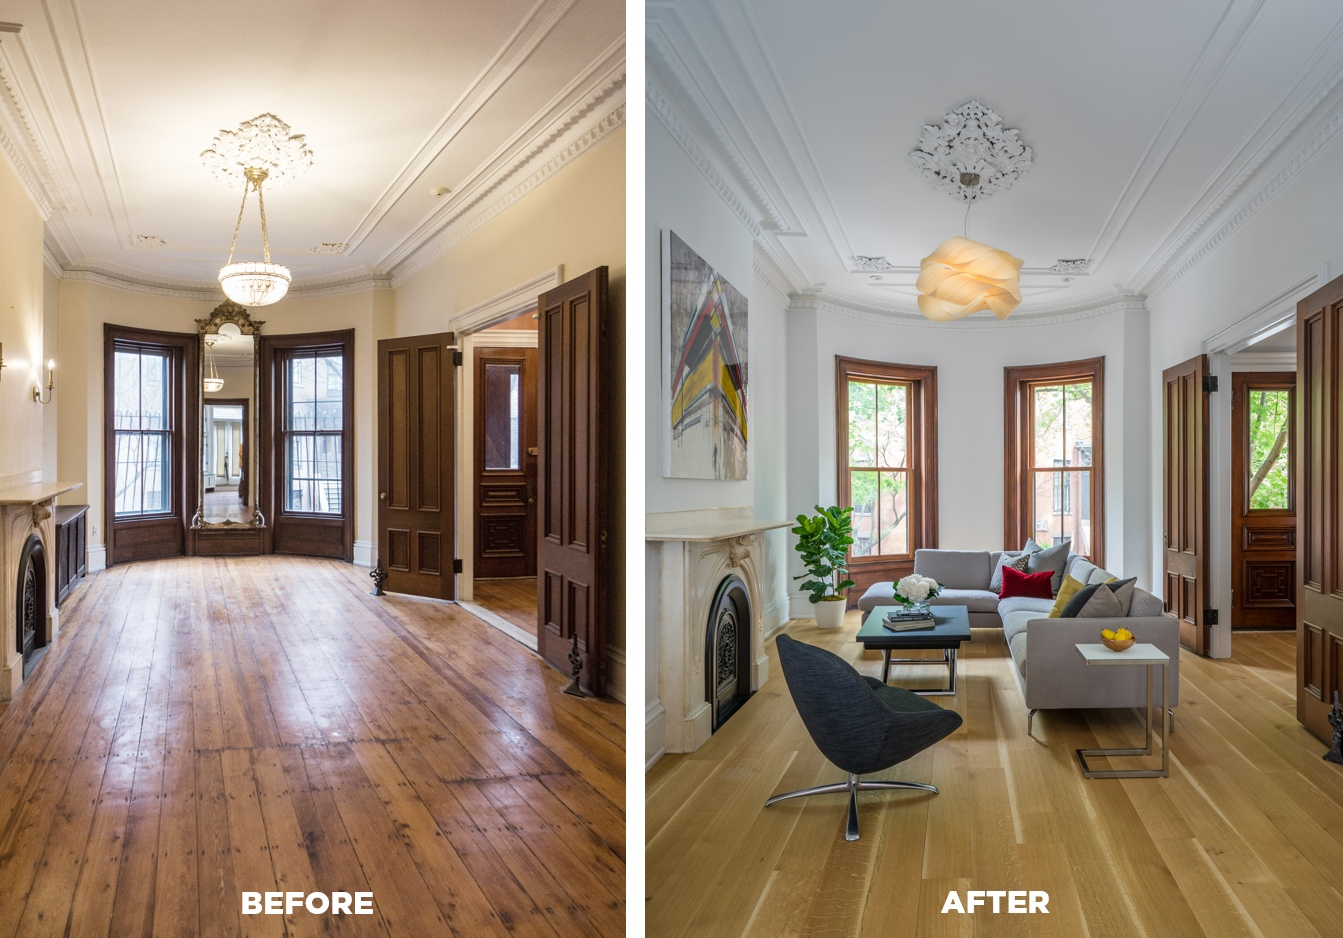 Historic-Renovation-PassiveHouse-BeforeAfter.jpg